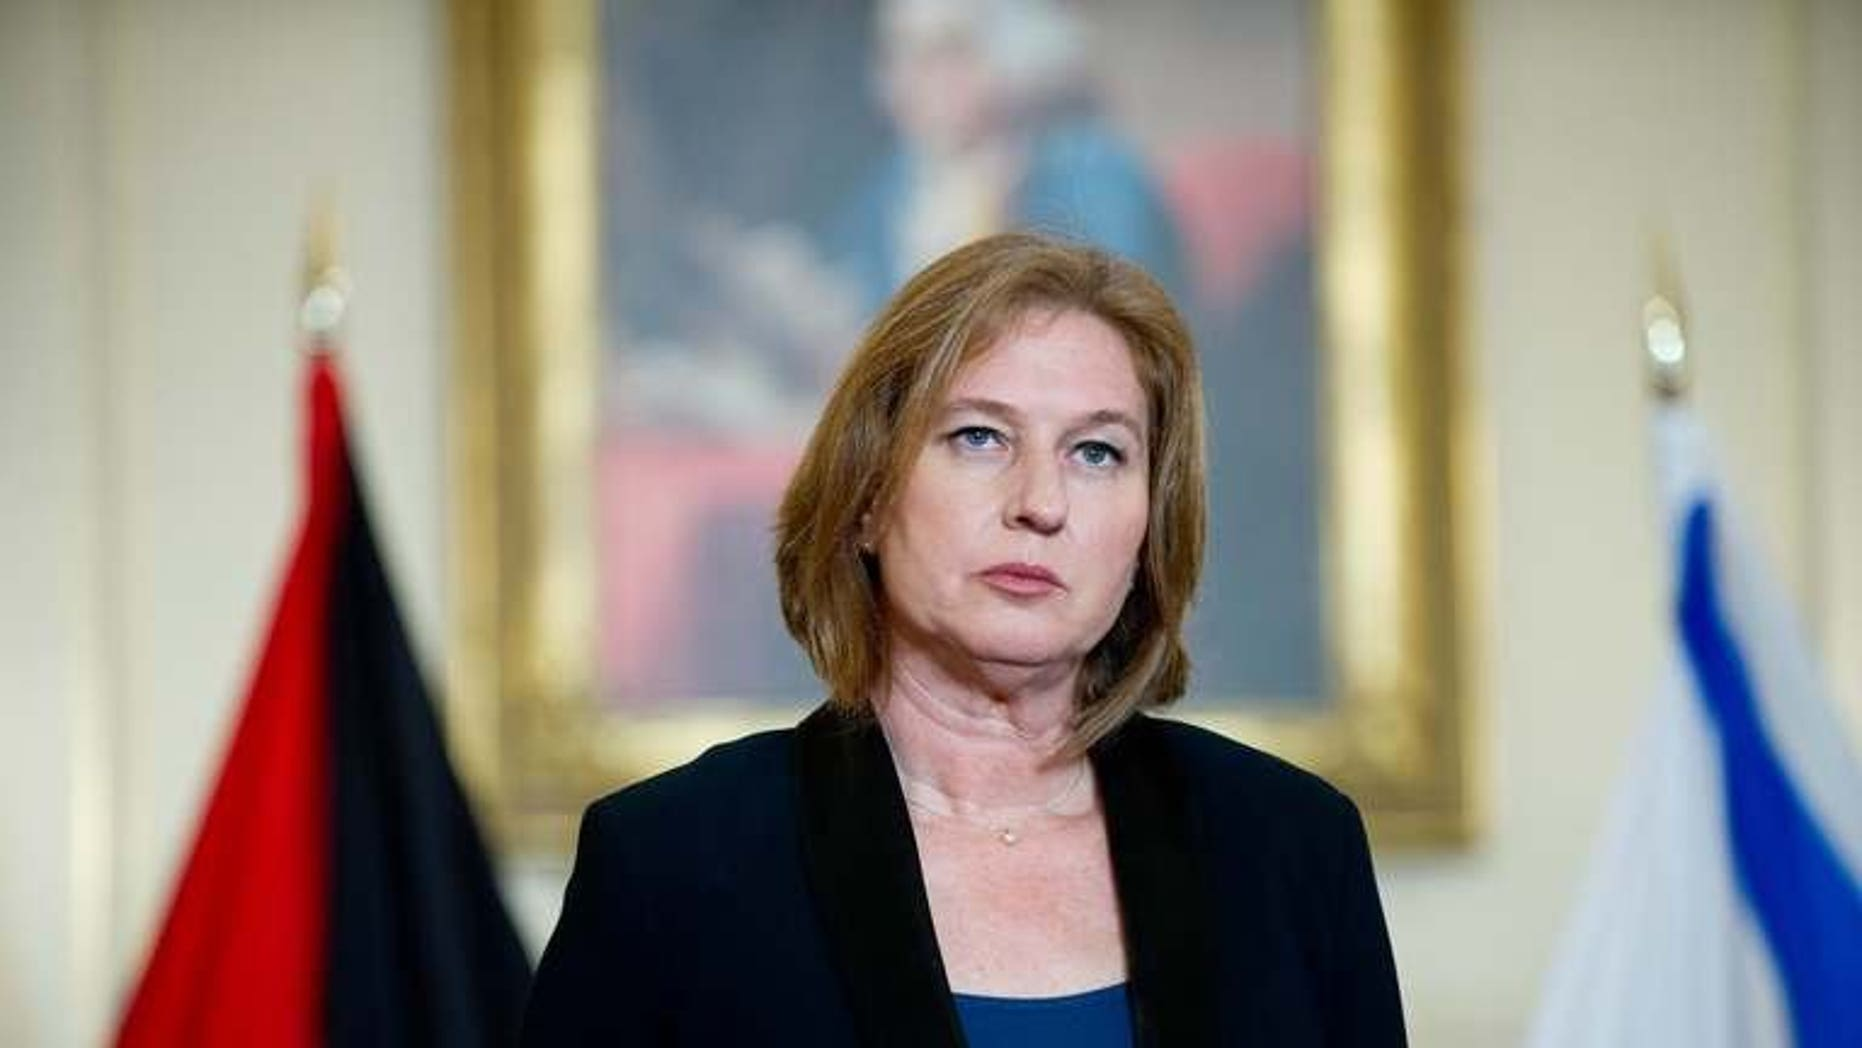 Israel's chief negotiator and Justice Minister Tzipi Livni, pictured at the State Department in Washington, DC, on July 30, 2013. The next round of direct Israeli-Palestinian peace talks will take place in the region during the second week of August, Livni said on Saturday.